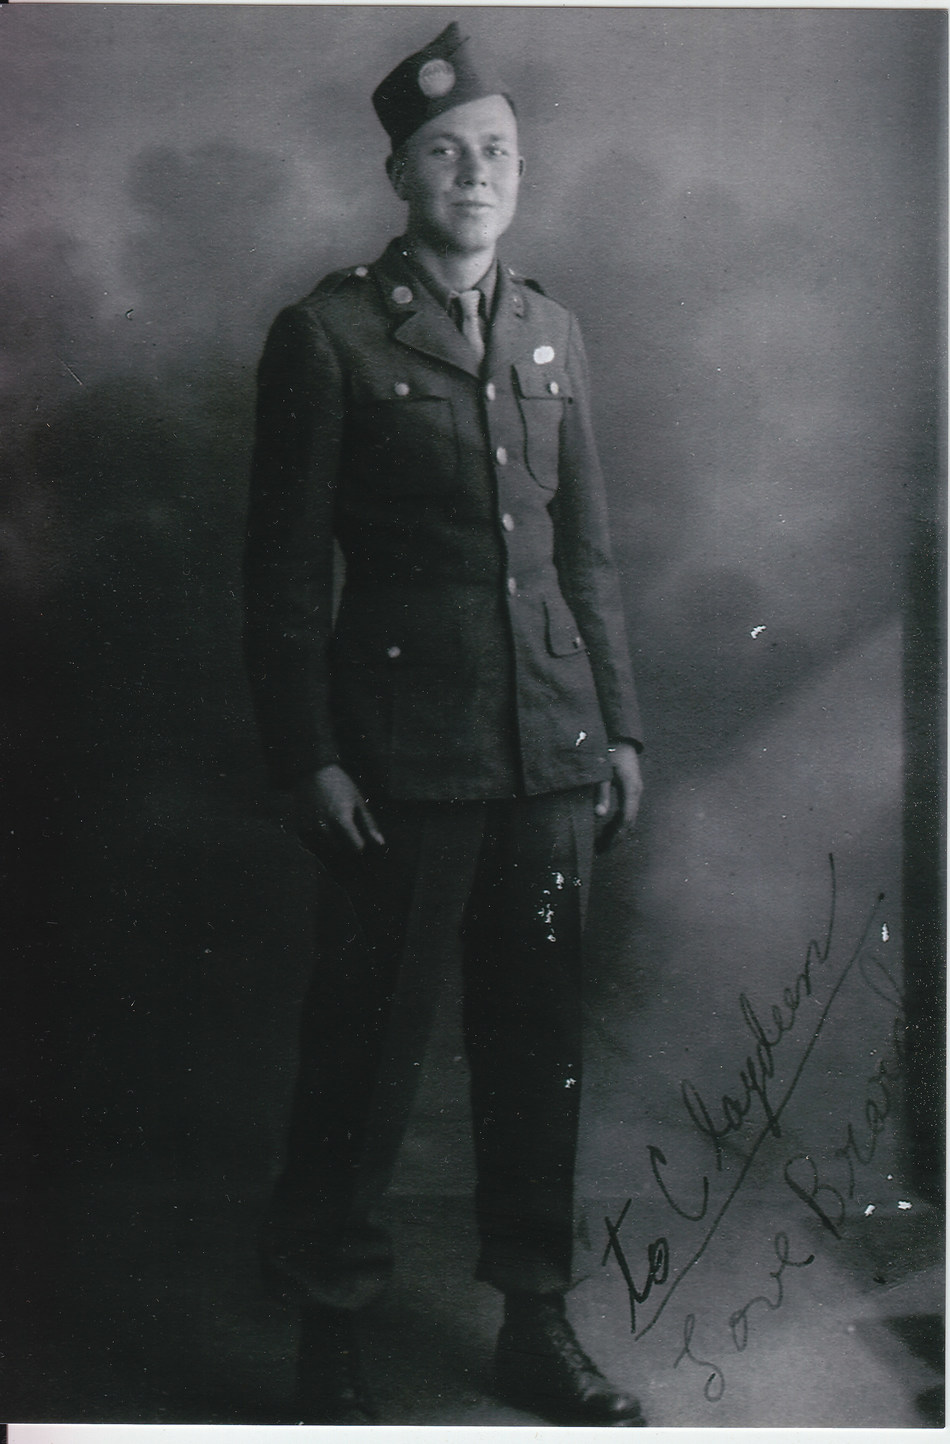 The National WWII Museum's new tour, Easy Company: England to the Eagle's Nest Tour, will feature a rare opportunity to travel with Easy Company veteran Brad Freeman - pictured here in a service-era photo - who will bring his poignant story and wartime experiences with his Band of Brothers to life throughout the journey.